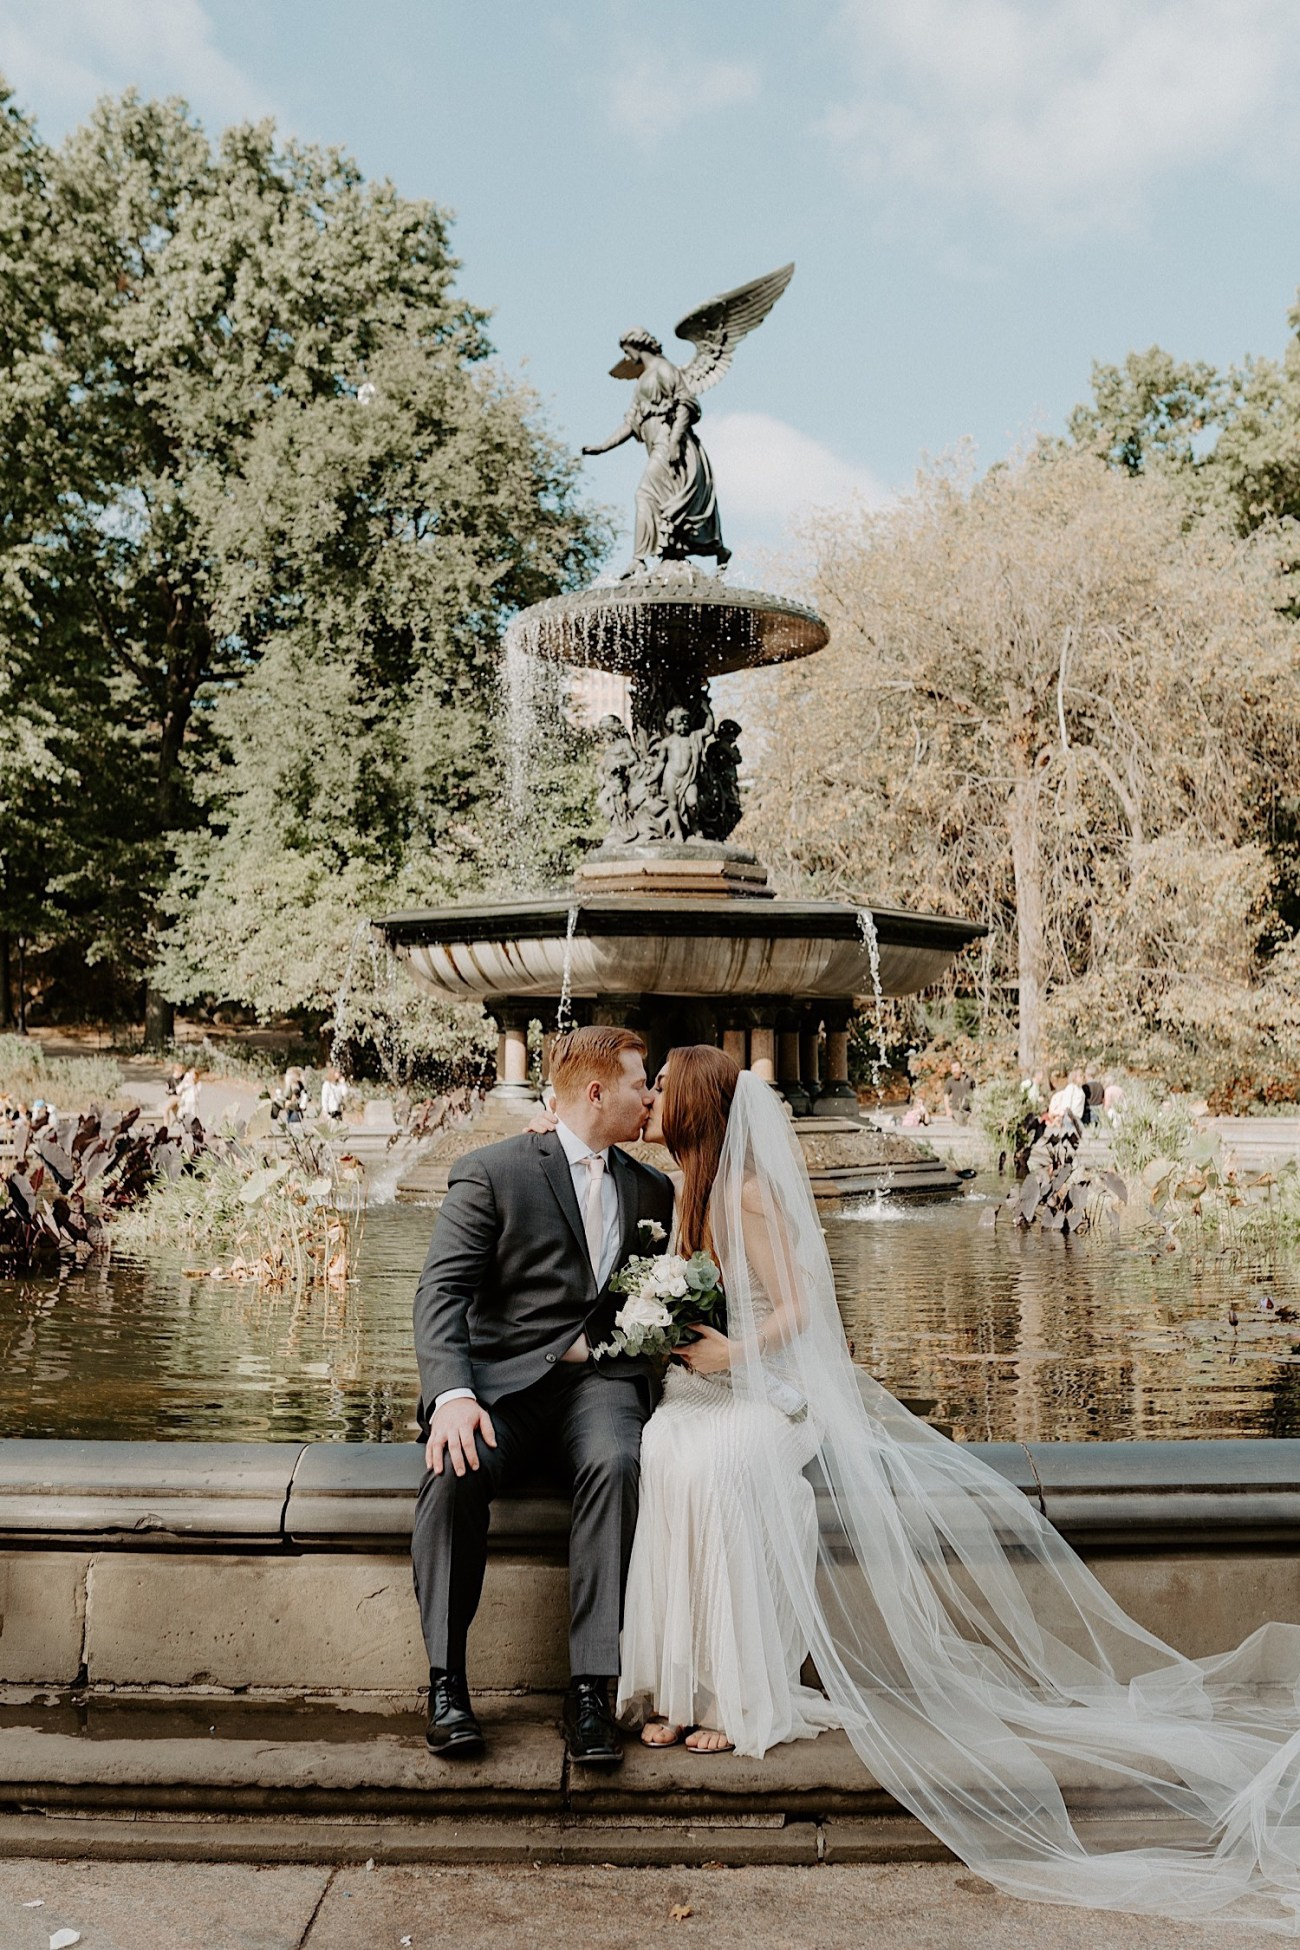 Central Park Wedding Photos Central Park Elopement NYC Wedding Photographer 23